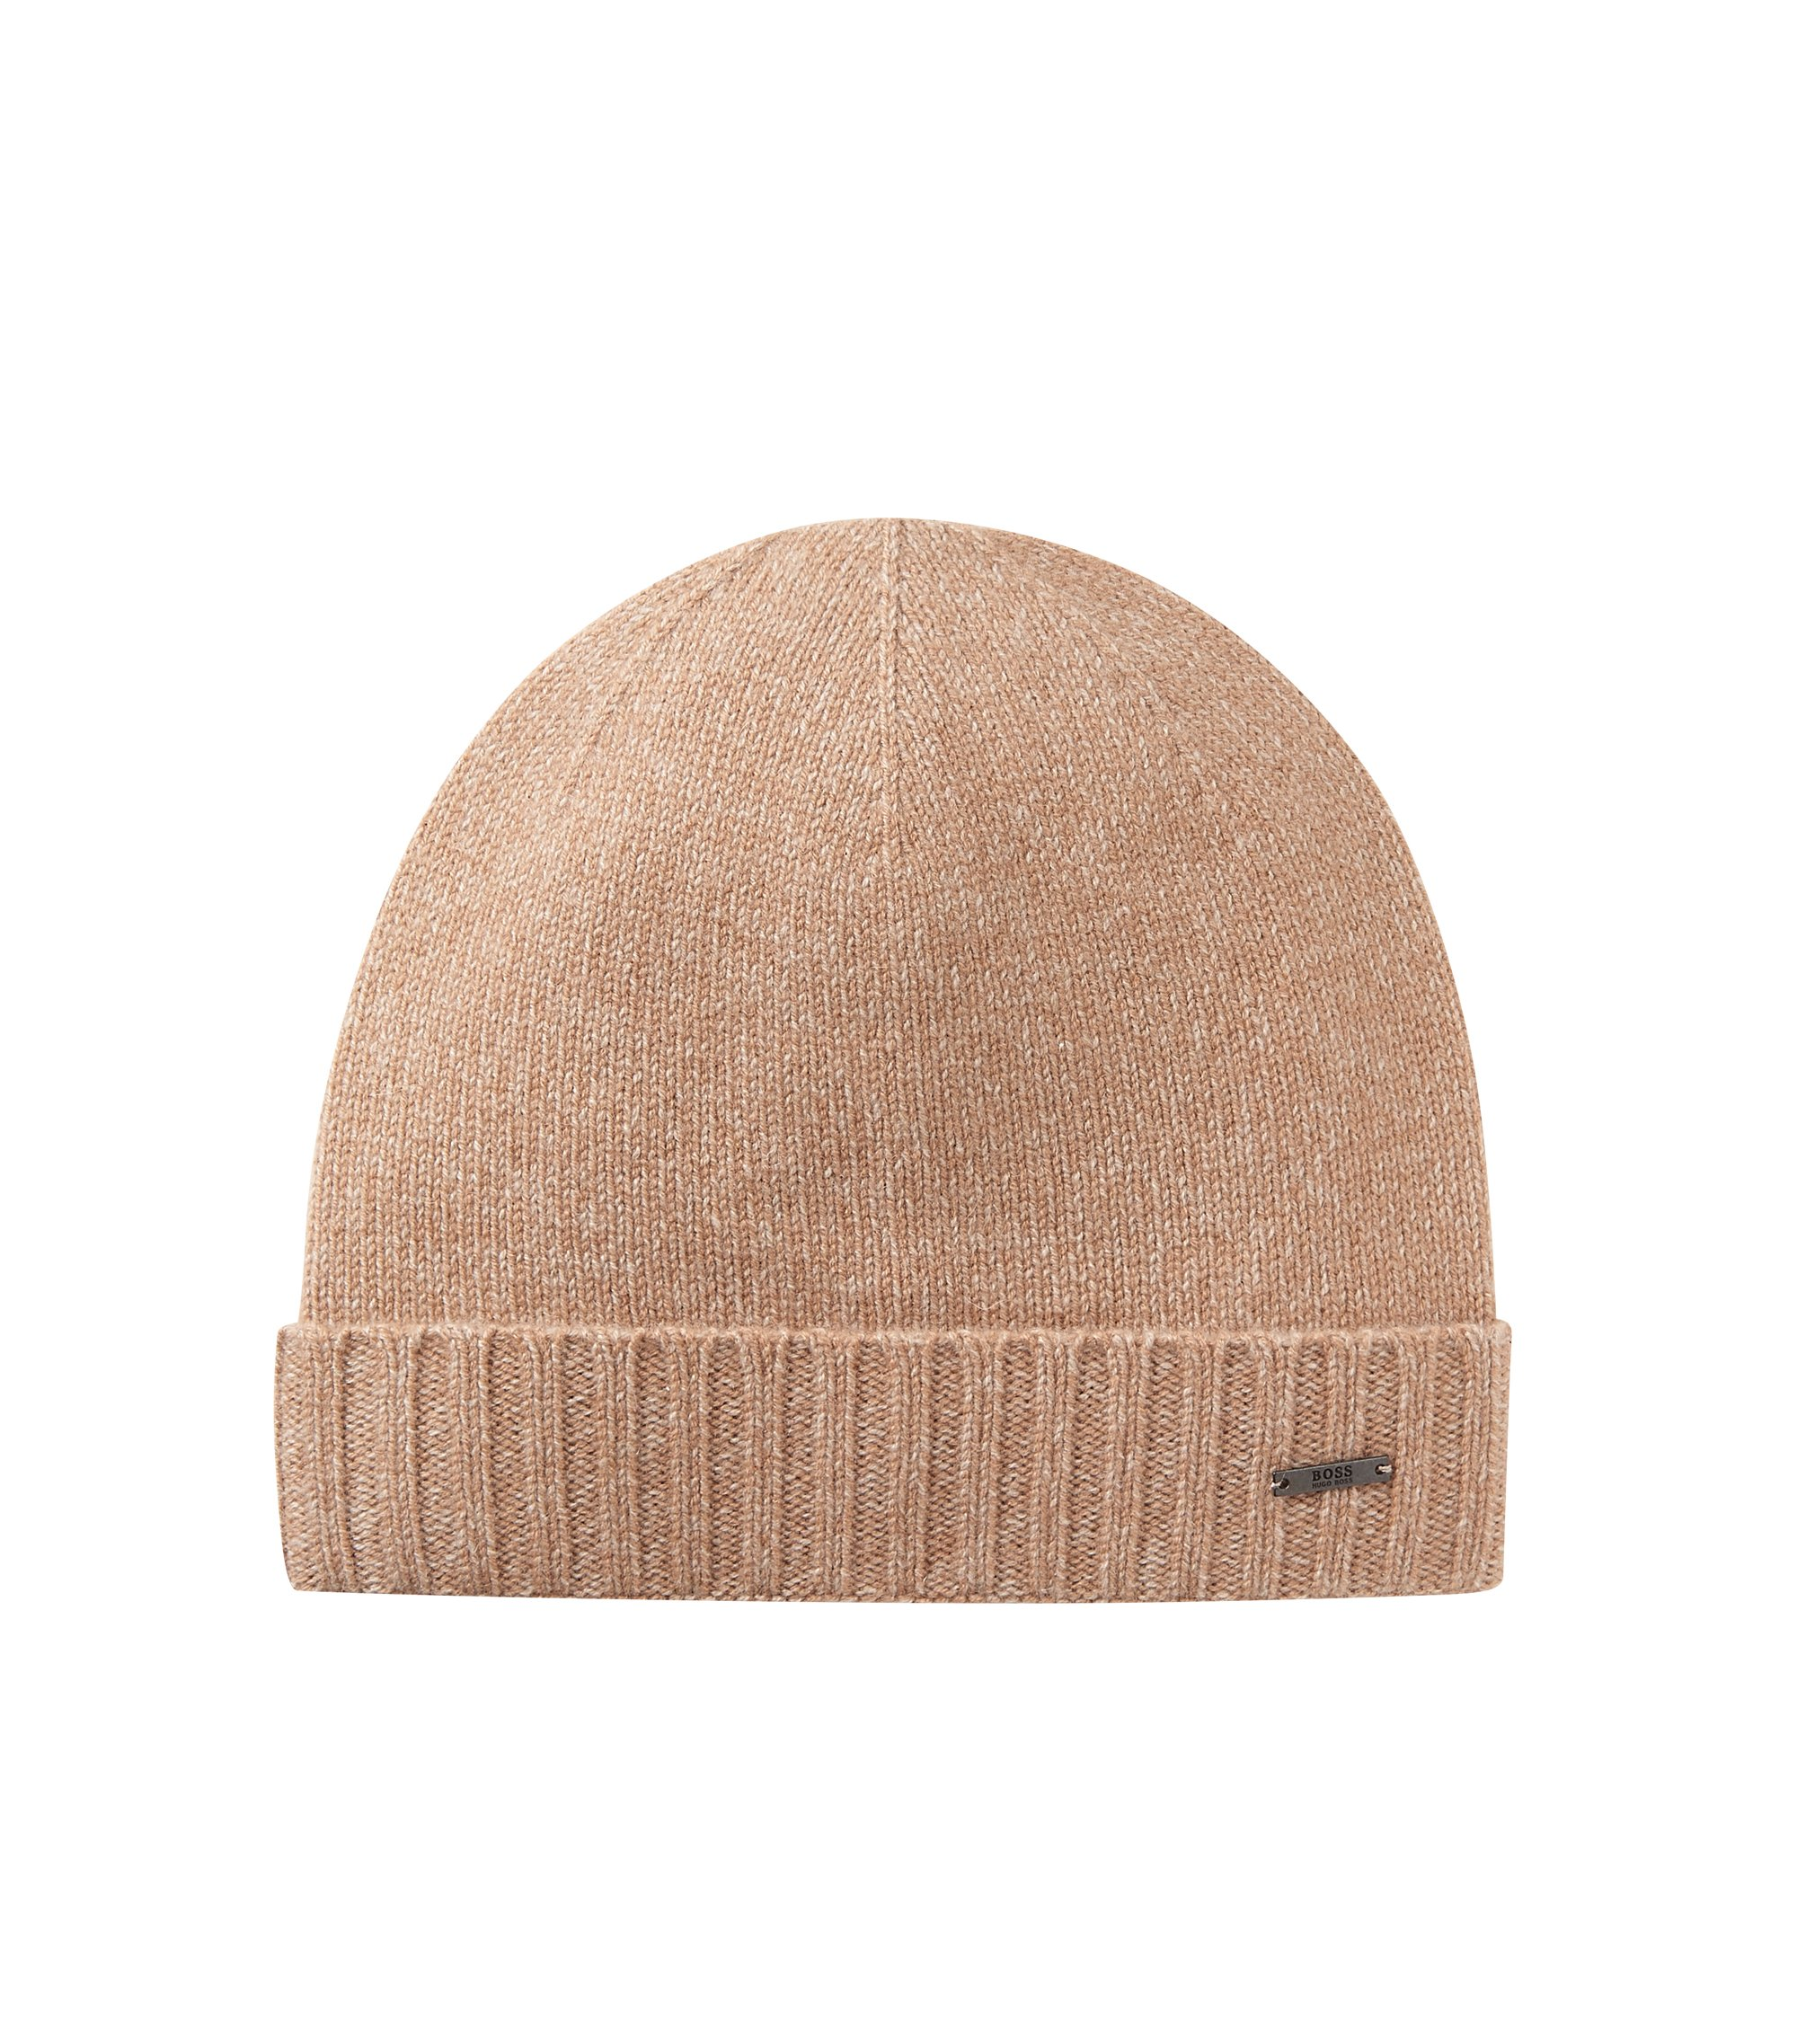 Beanie hat in mouliné cashmere, Beige